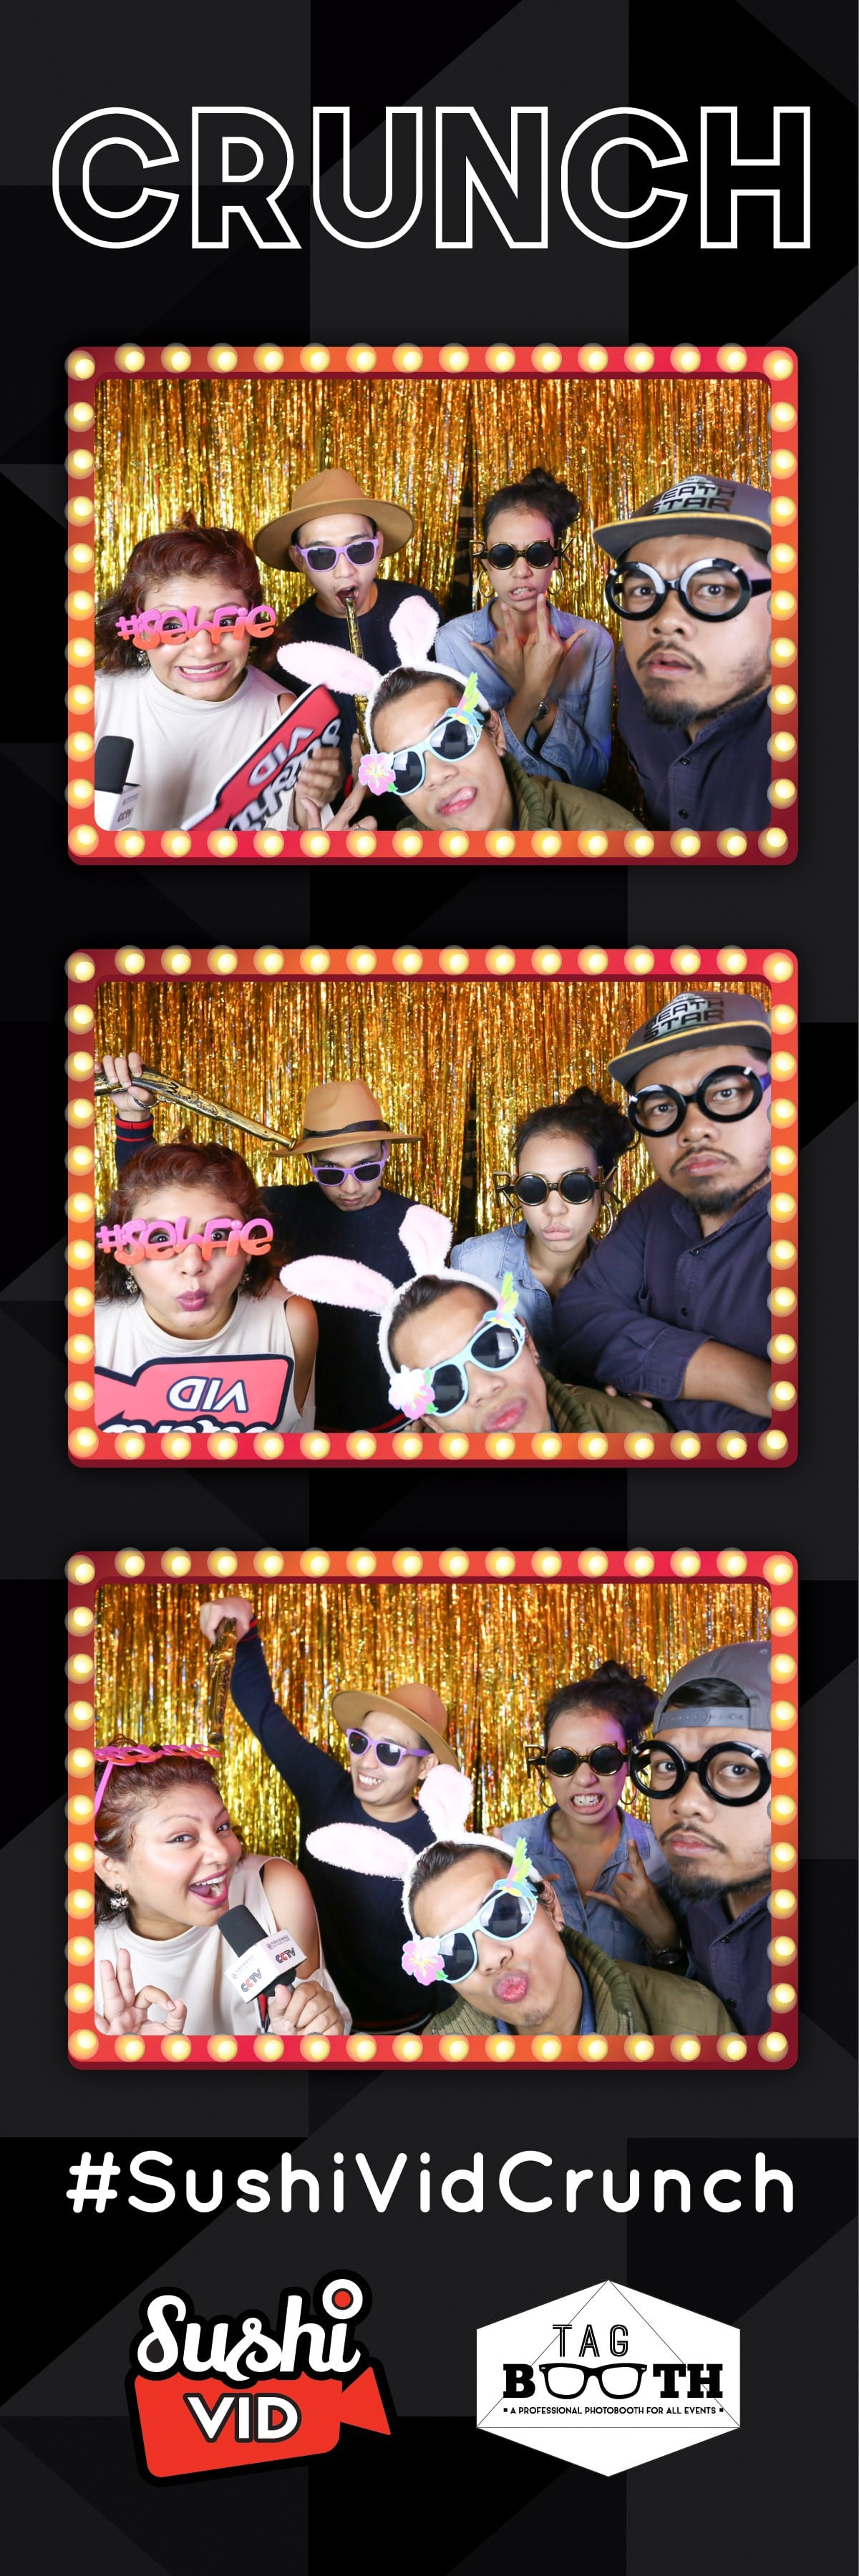 Sushivid+crunch+tagbooth1+5